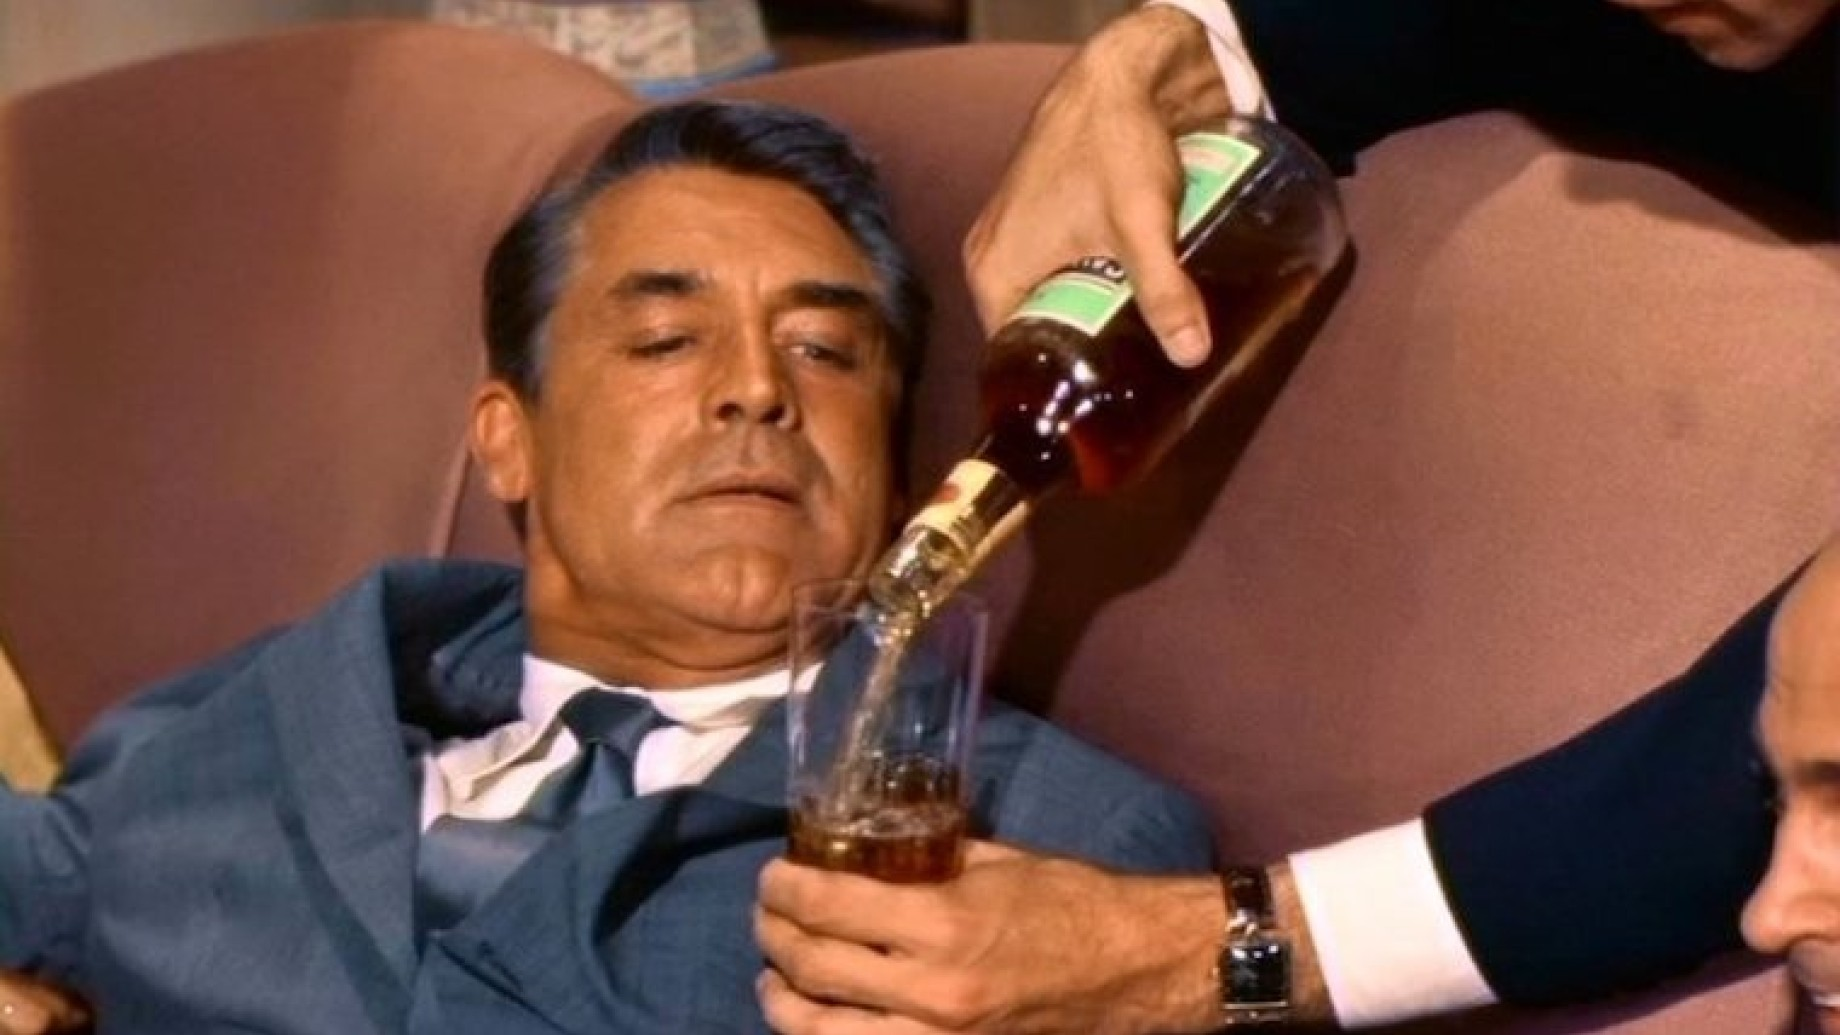 north-by-northwest-1959-001-cary-grant-forced-to-drink-tumbler-full-of-whiskey